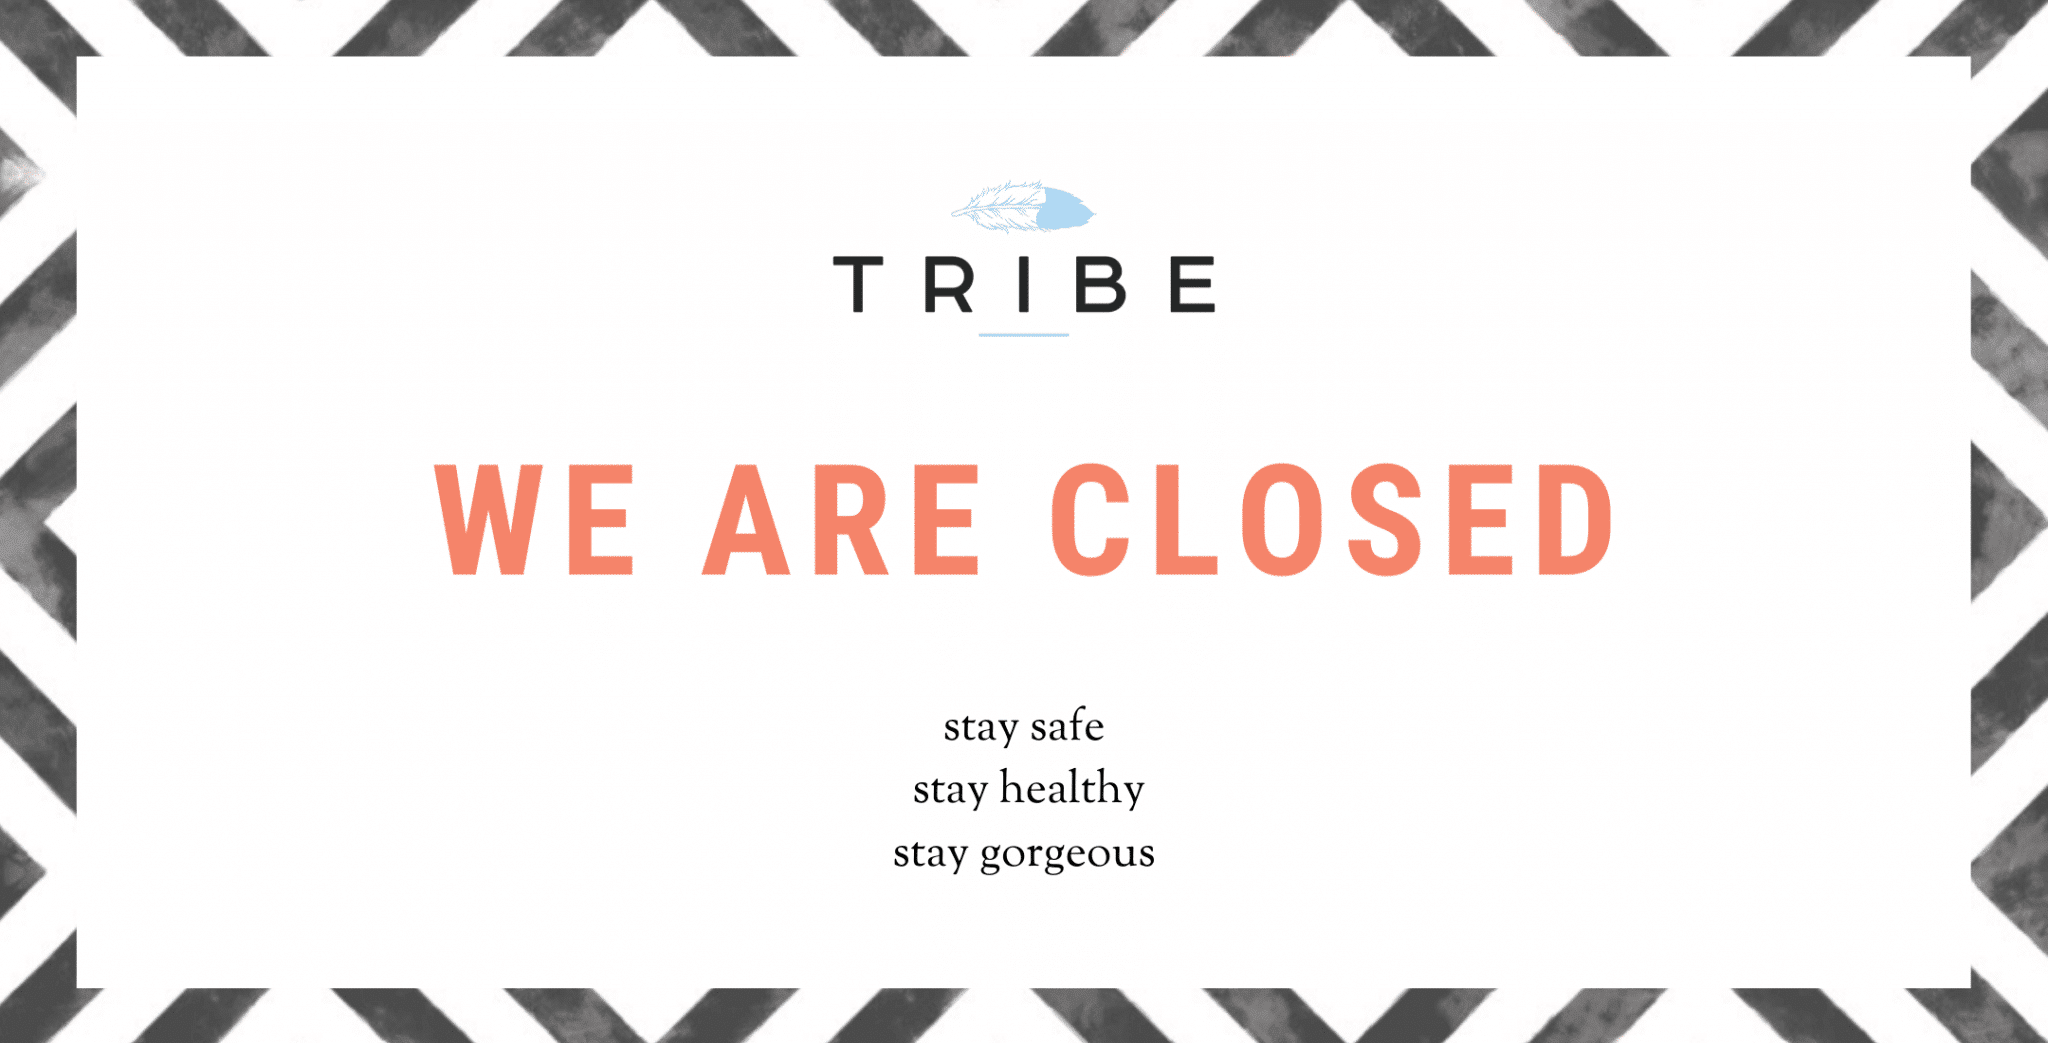 We are closed - Tribe Salons